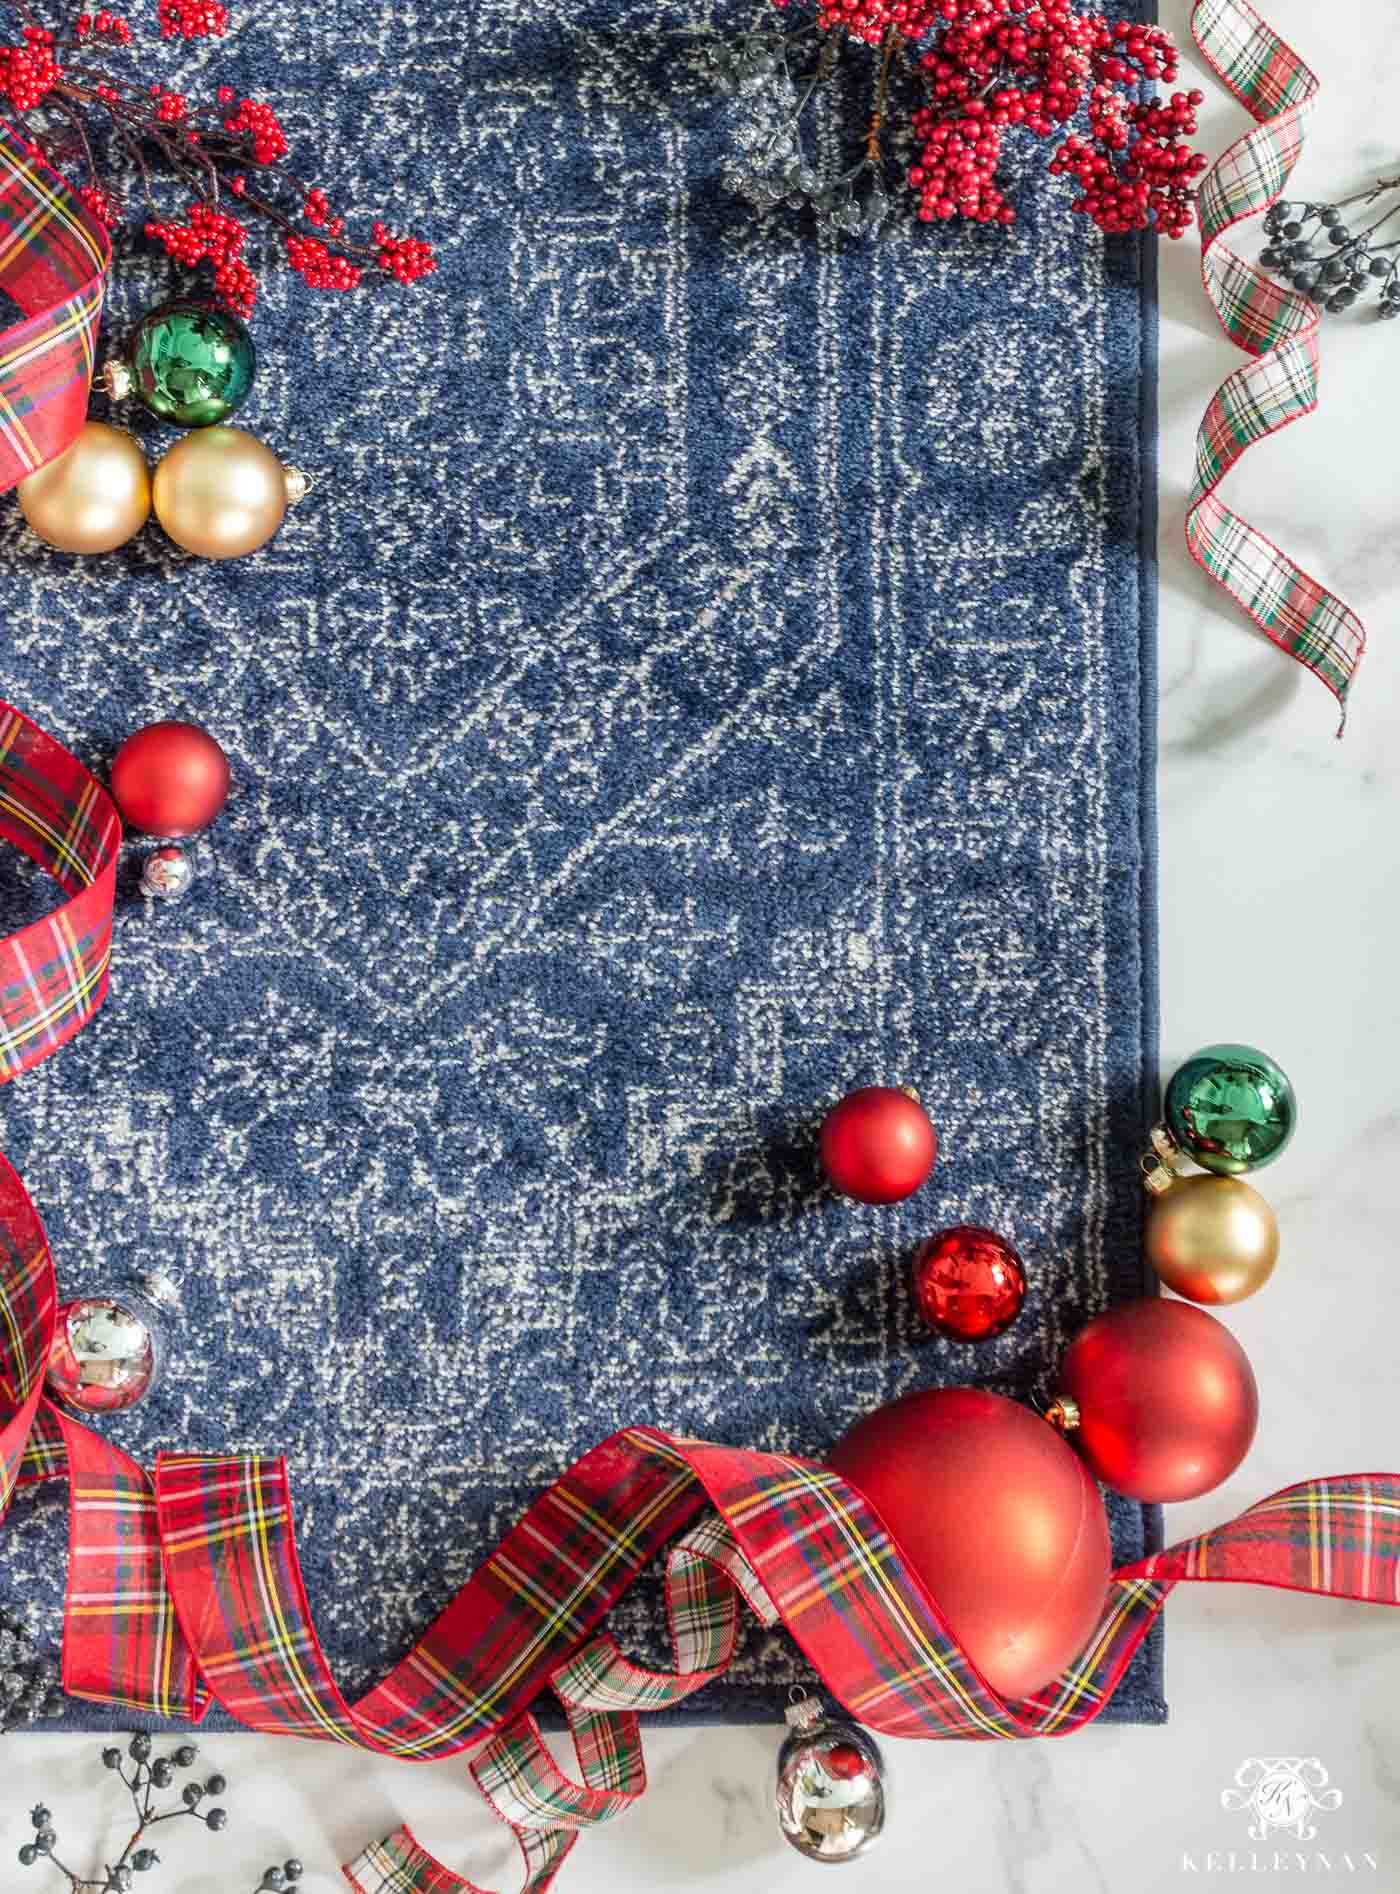 Christmas Color Scheme Ideas with Coordinating Rugs